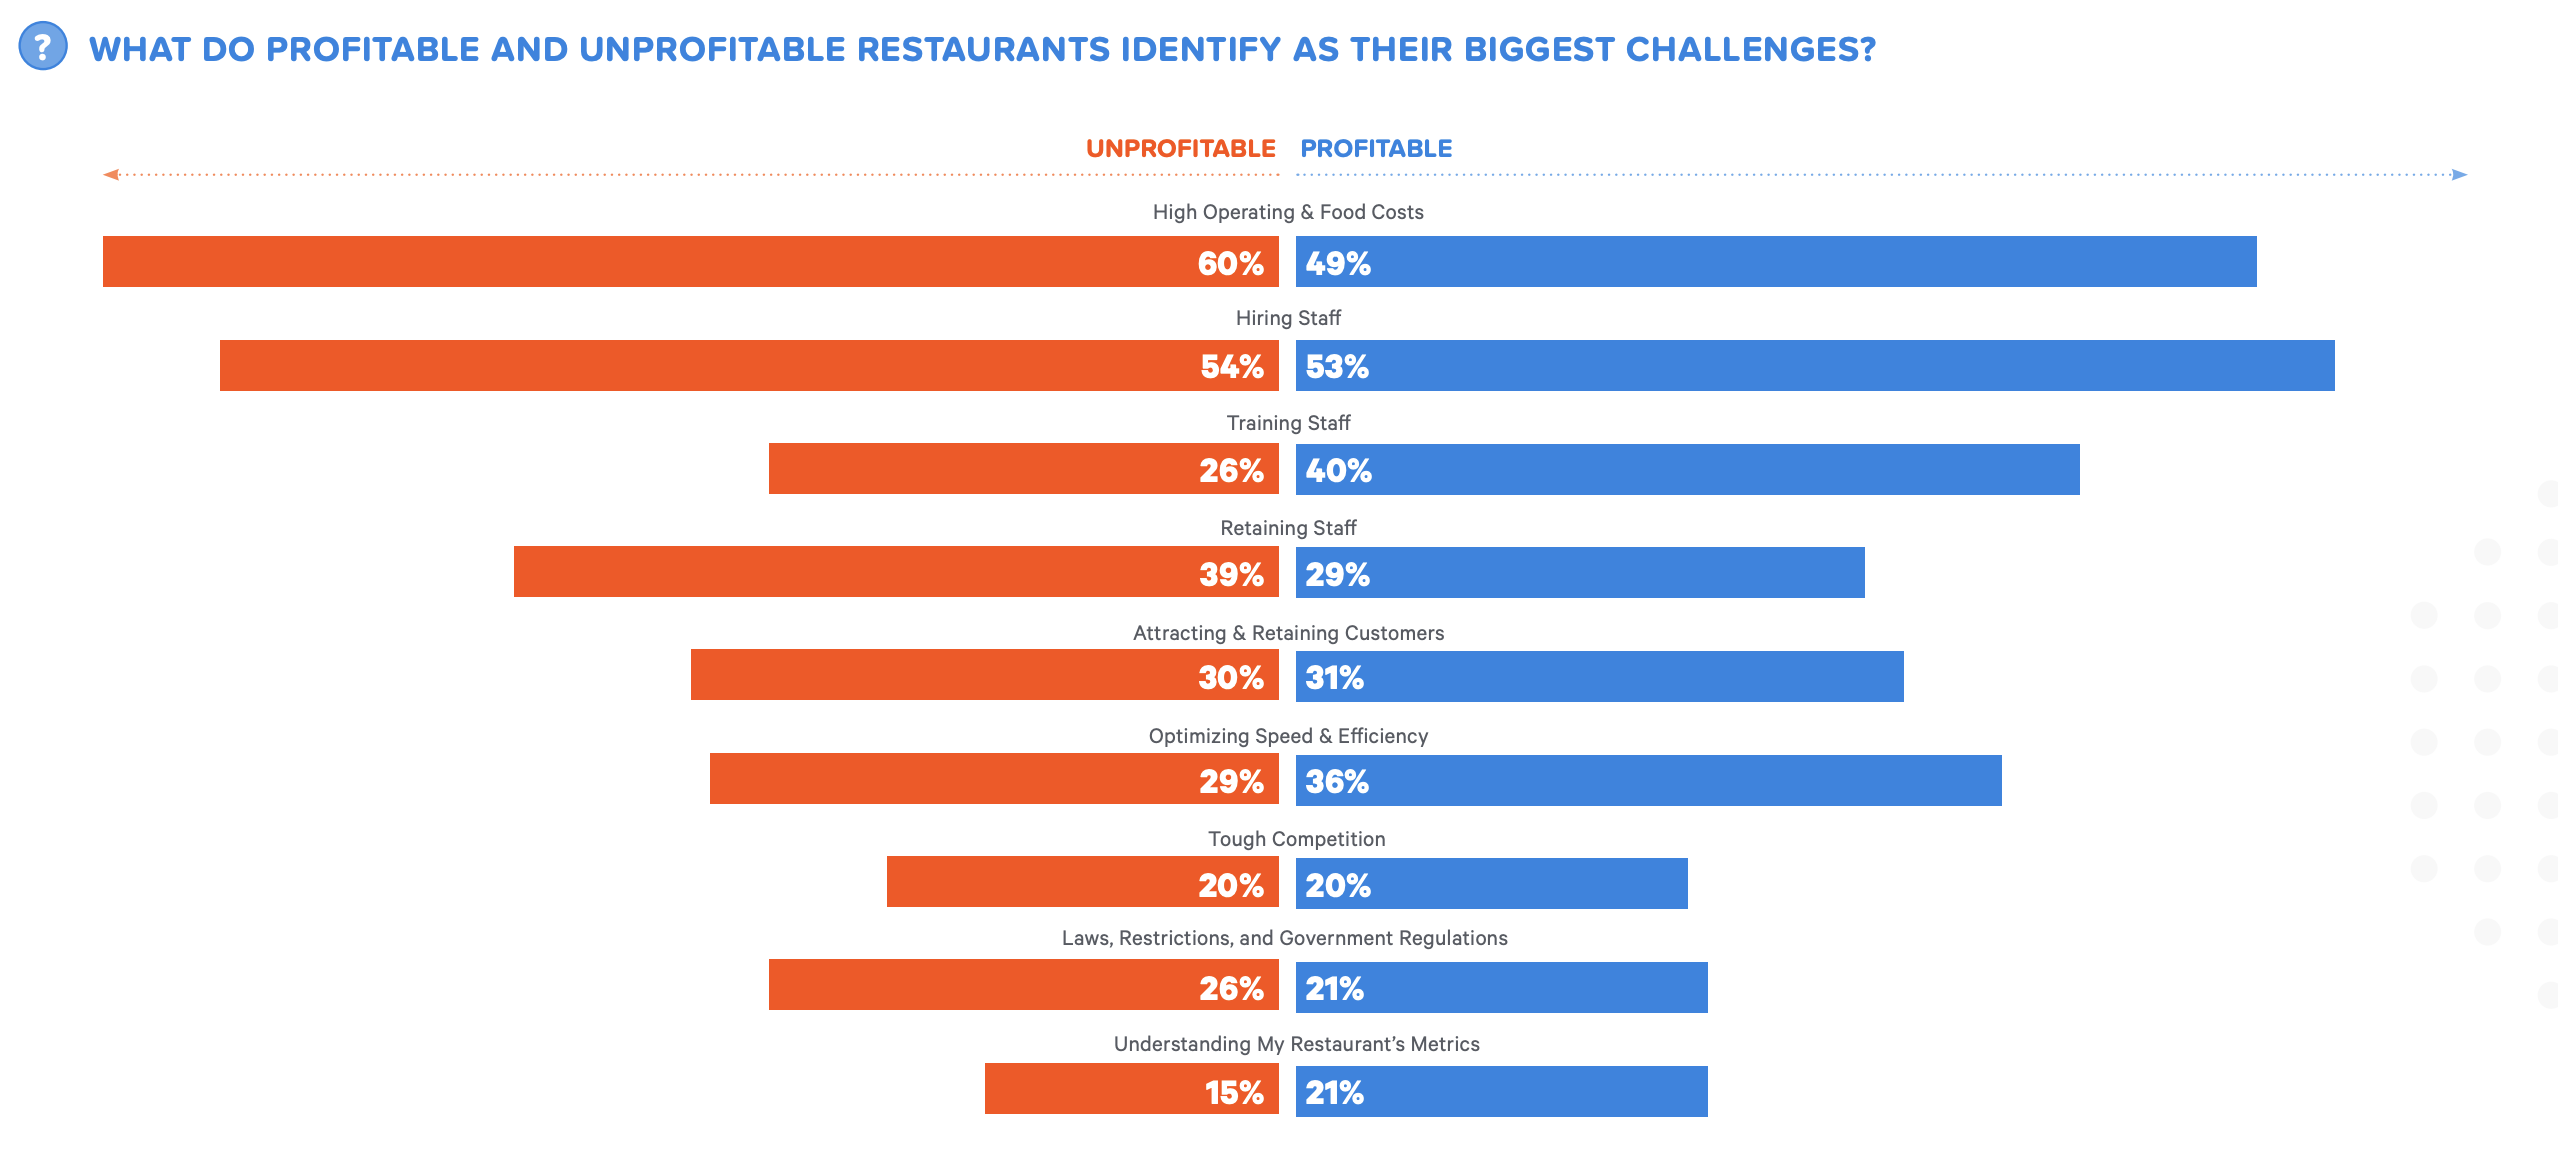 Botkeeper top restaurant challenges by profitability